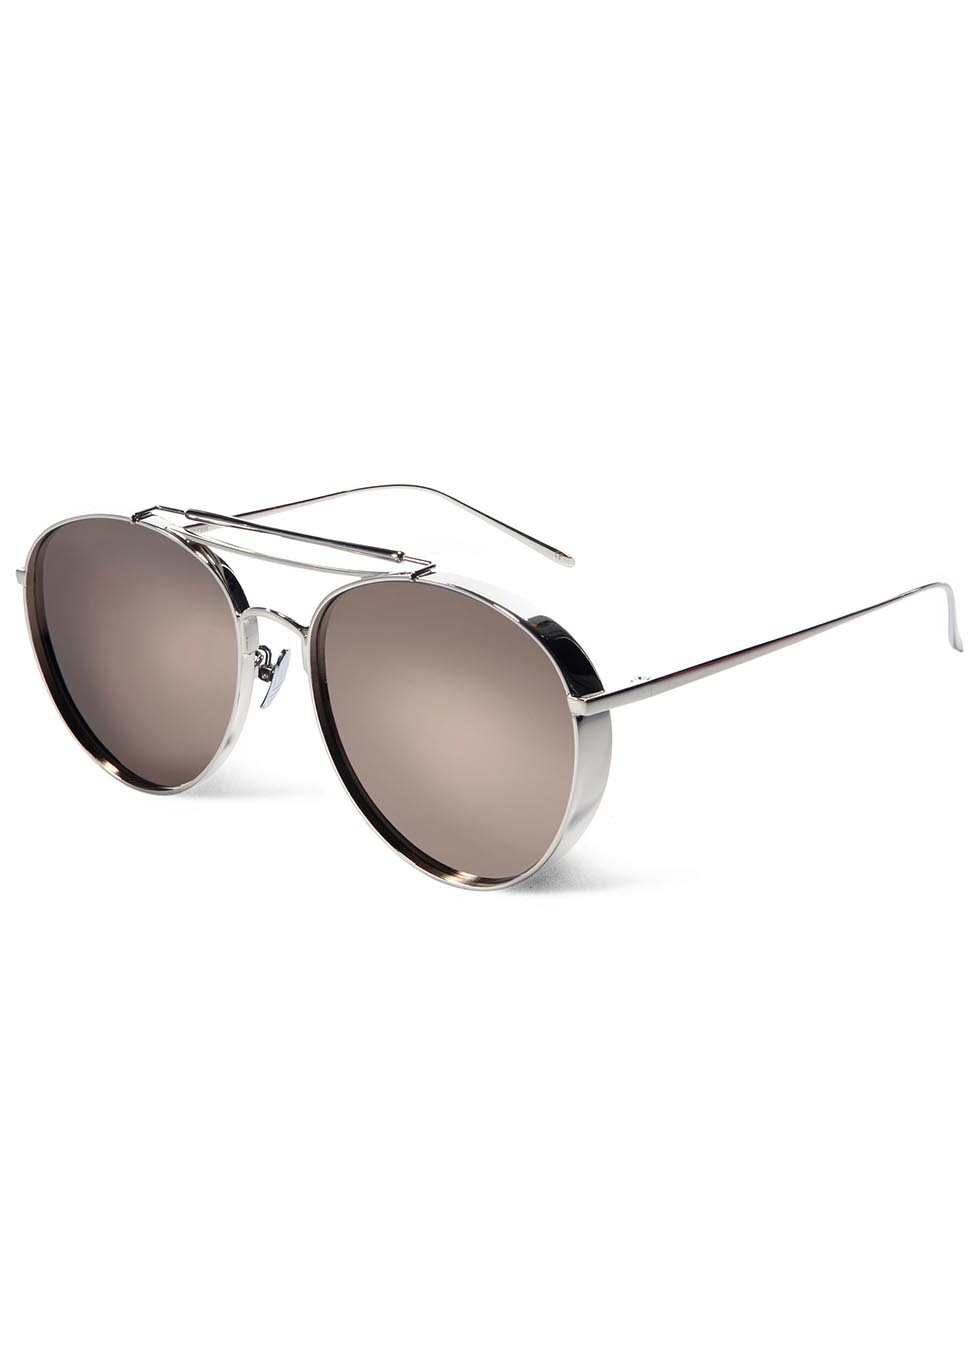 a44eb90c513 Gentle Monster Big Bully Mirrored Aviator-style Sunglasses in ...